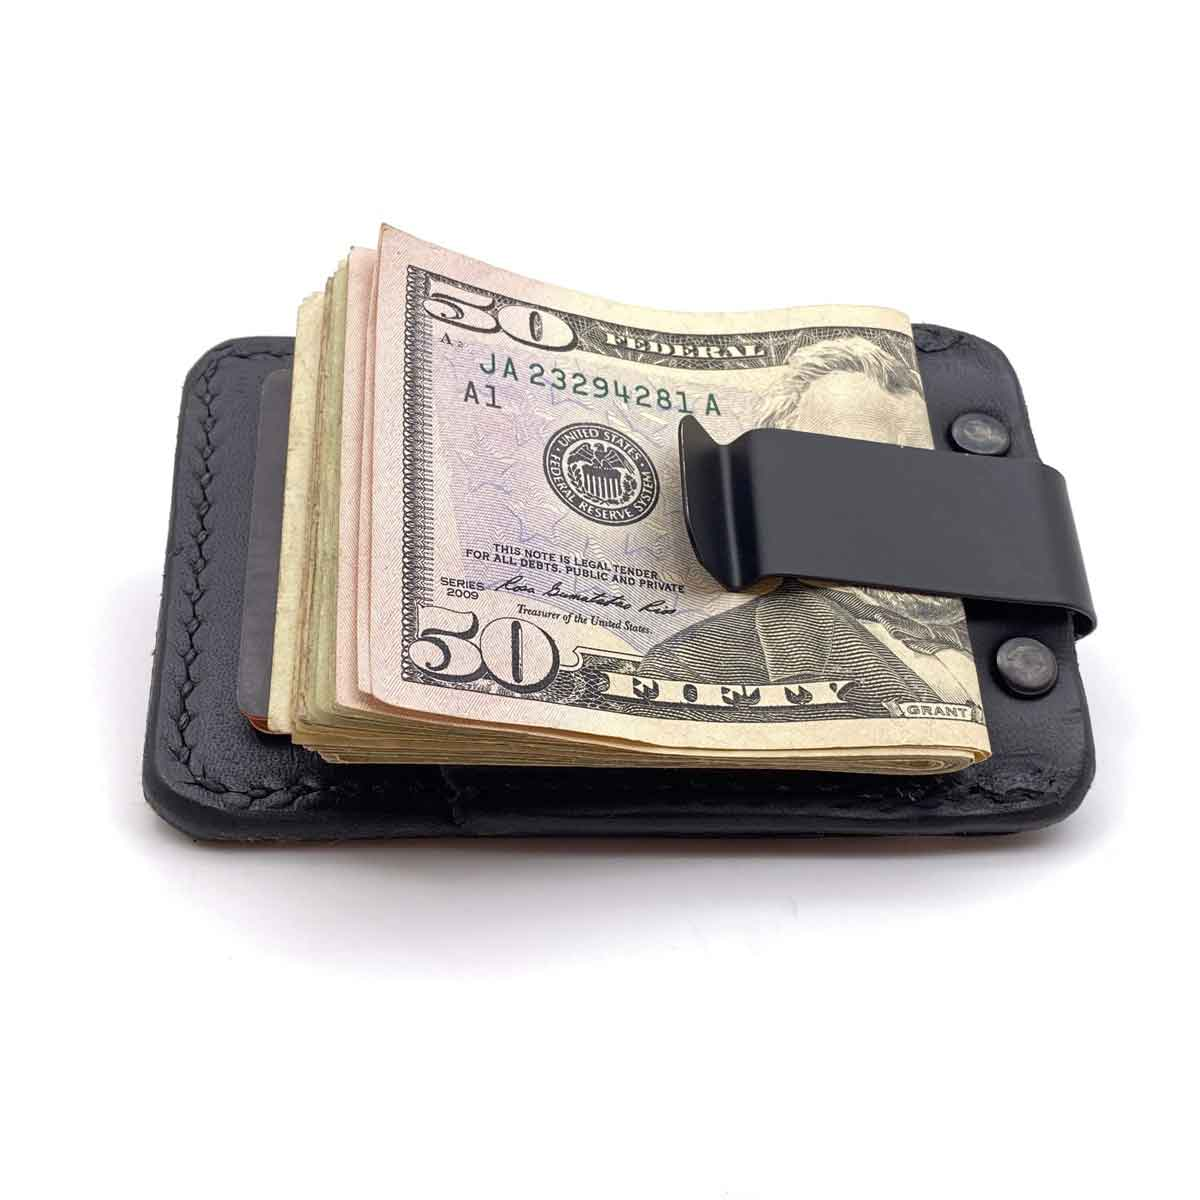 Back side of Black Bridle leather minimalist wallet with money in clip